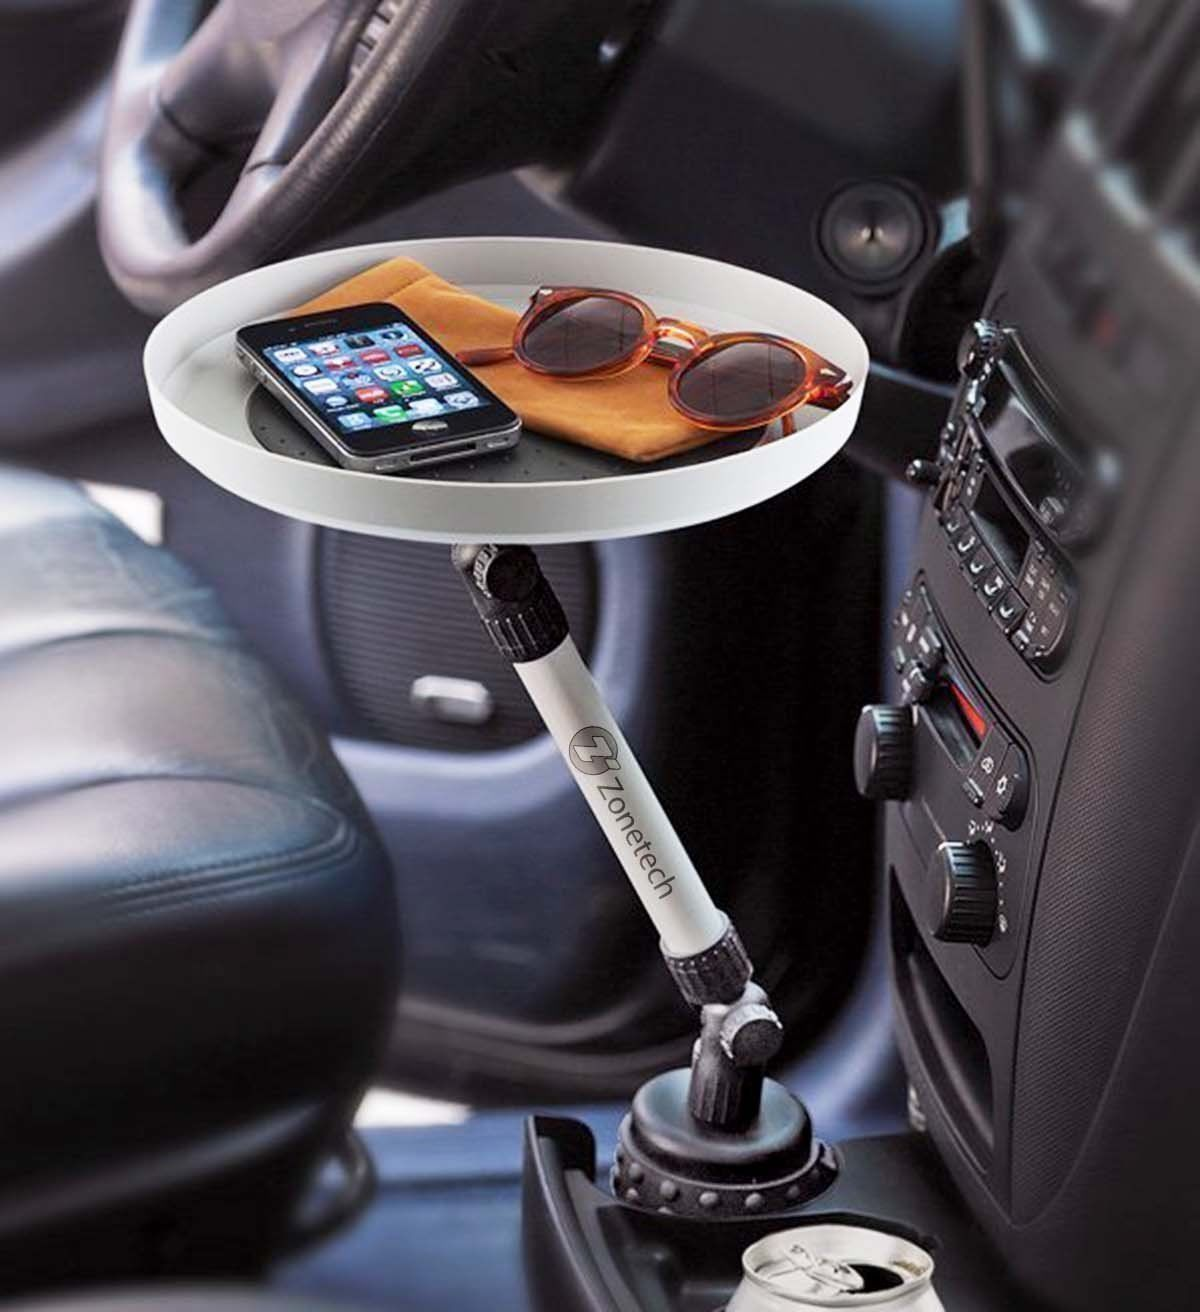 PORTABLE IN CAR VAN VEHICLE ASH TRAY CUP HOLDER CAMPING